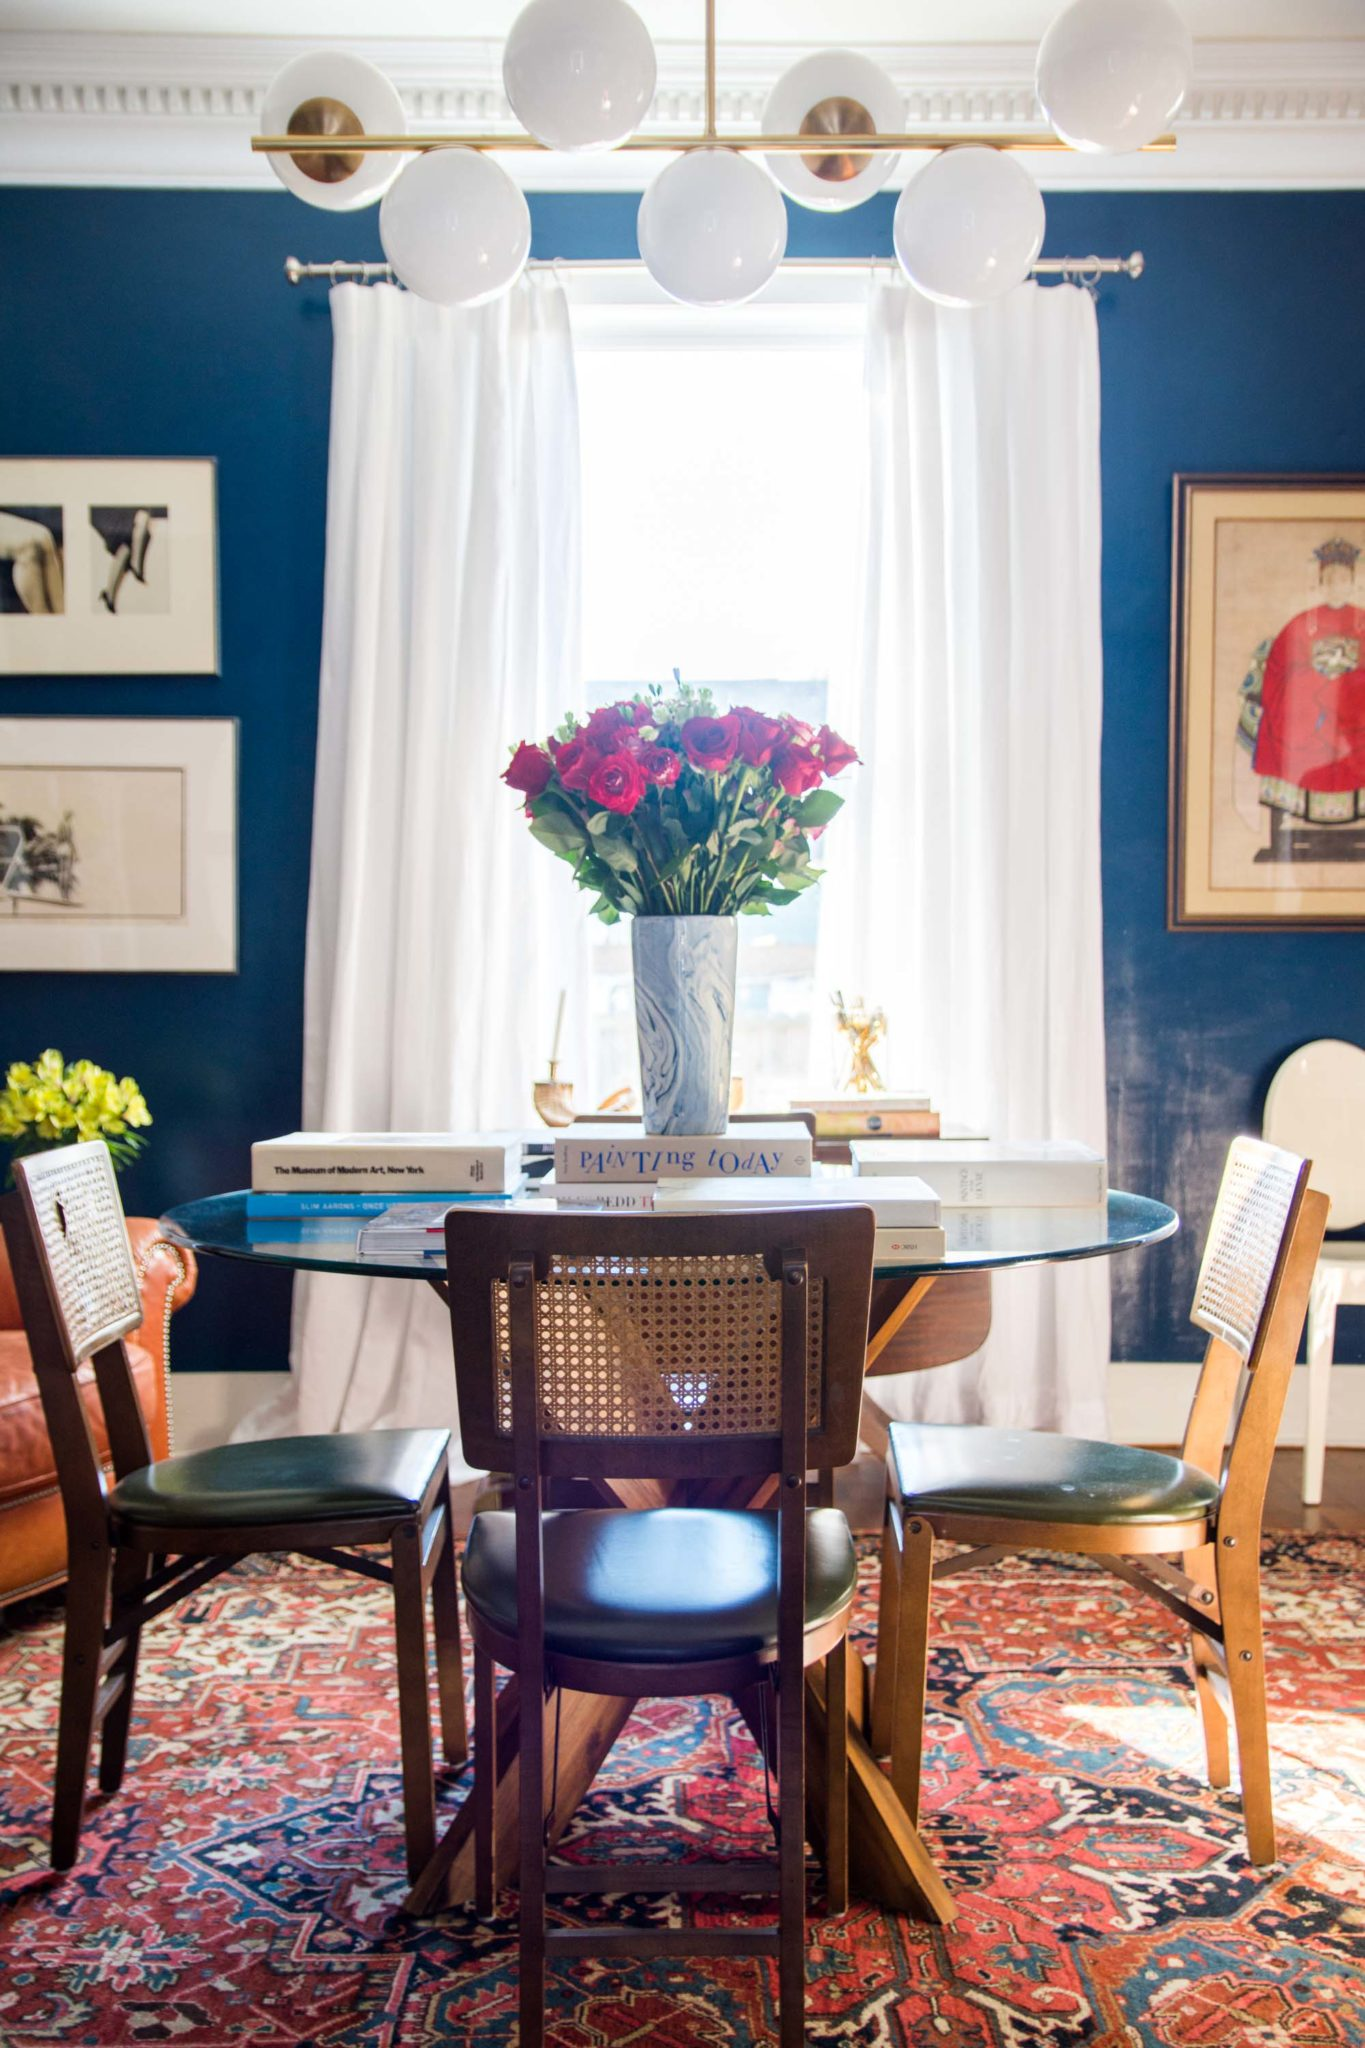 I Am So Excited To Share The Reveal Of The Bold New Dining Room At Tye  Street Project, Completely Reimagined With A Dark High Gloss Blue On The  Walls And A ...